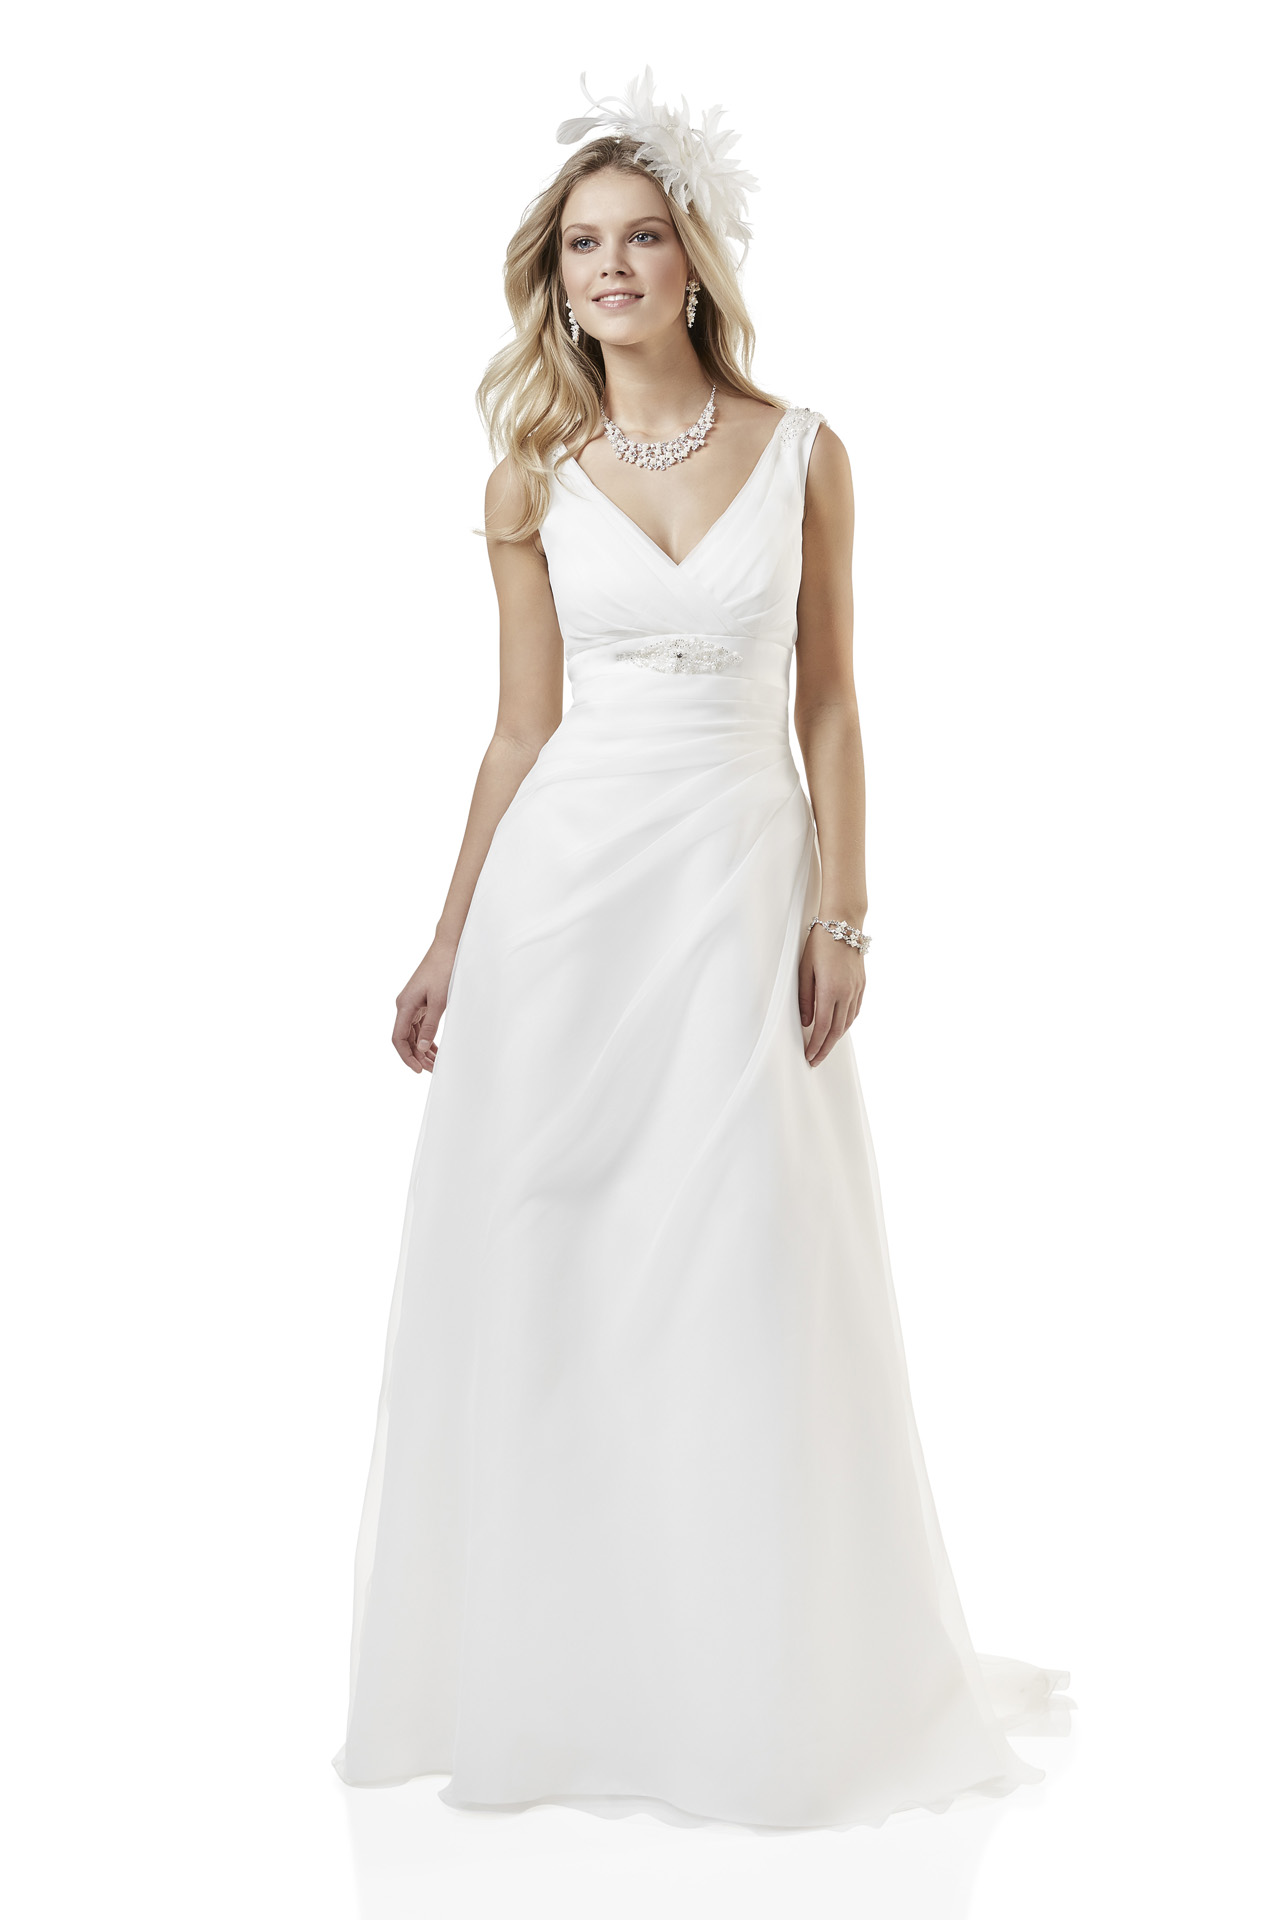 Brautkleid Weise Essentials Kollektion 2018 Modell 334342